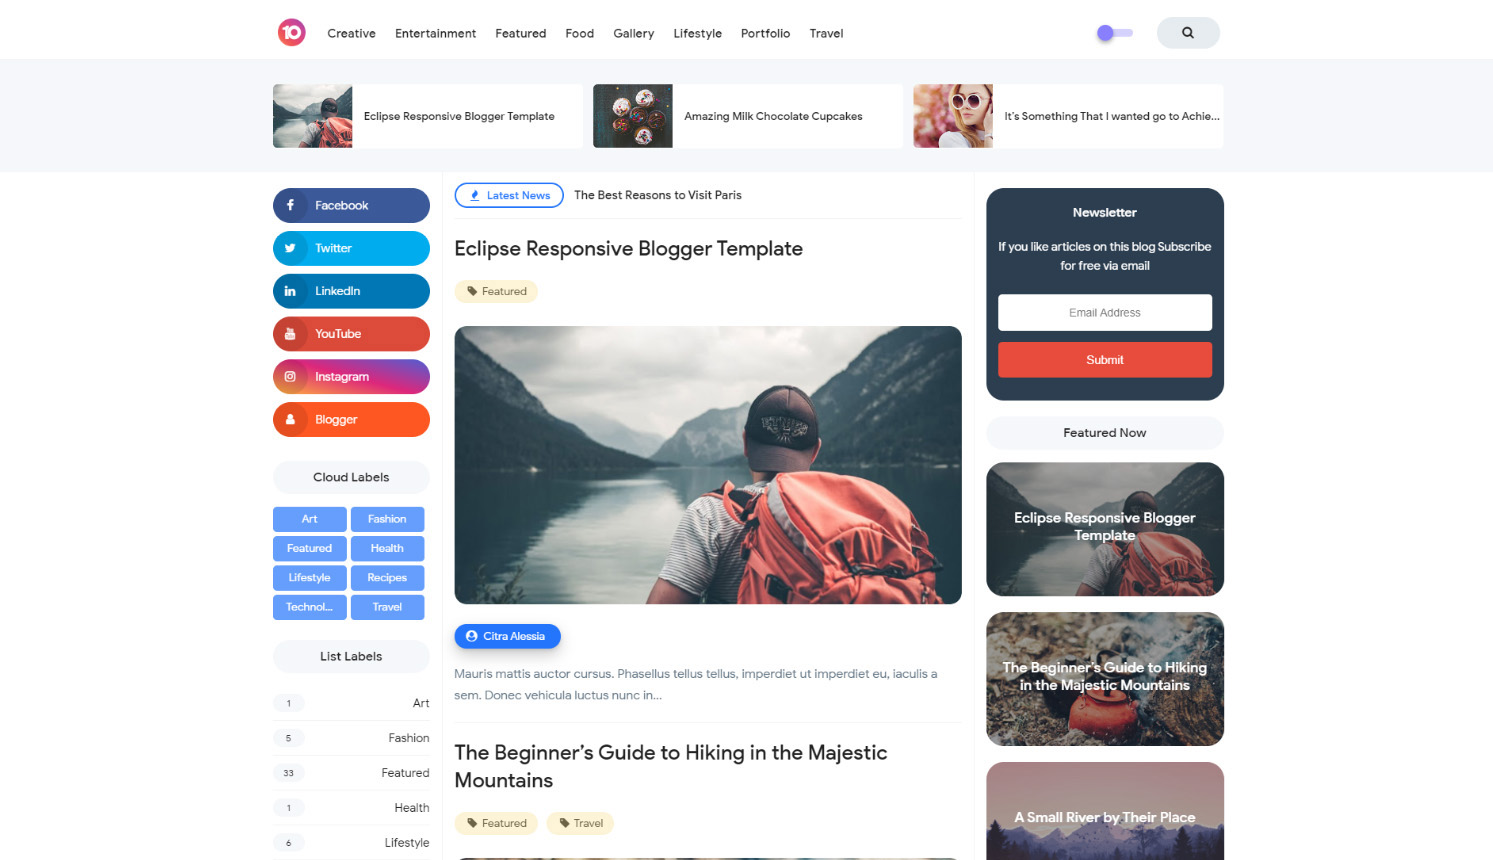 Eclipse Responsive Blogger Template